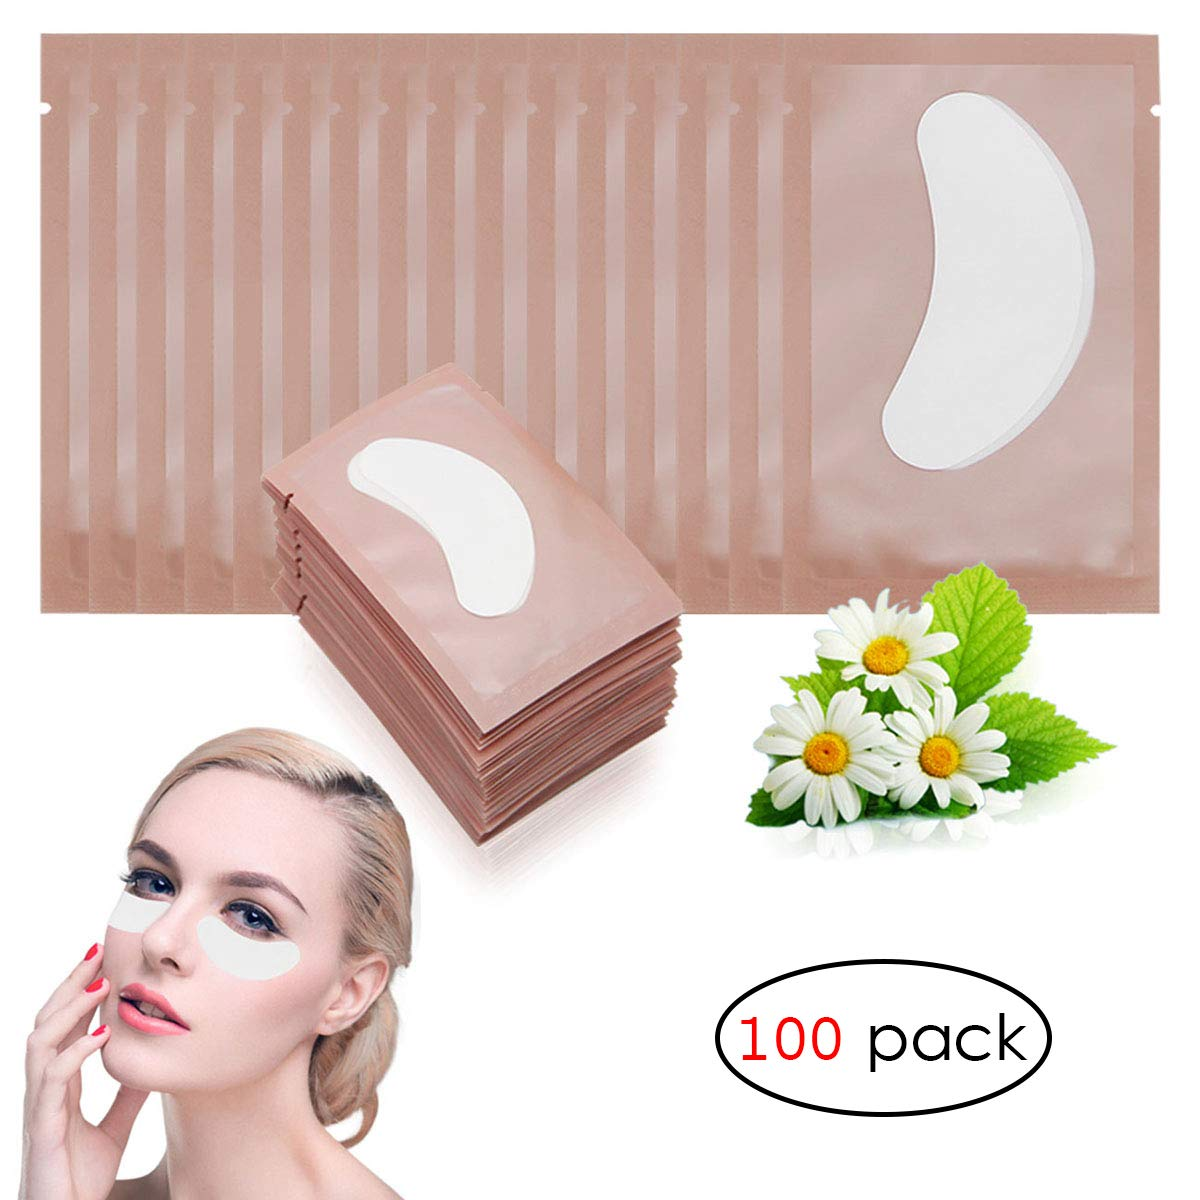 Adecco LLC 100 Pairs Under Eye Pads Lint Free Lash Extension Eye Gel Patches for DIY False Eyelash Extension Makeup,Eye Mask Beauty Tool by Adecco LLC